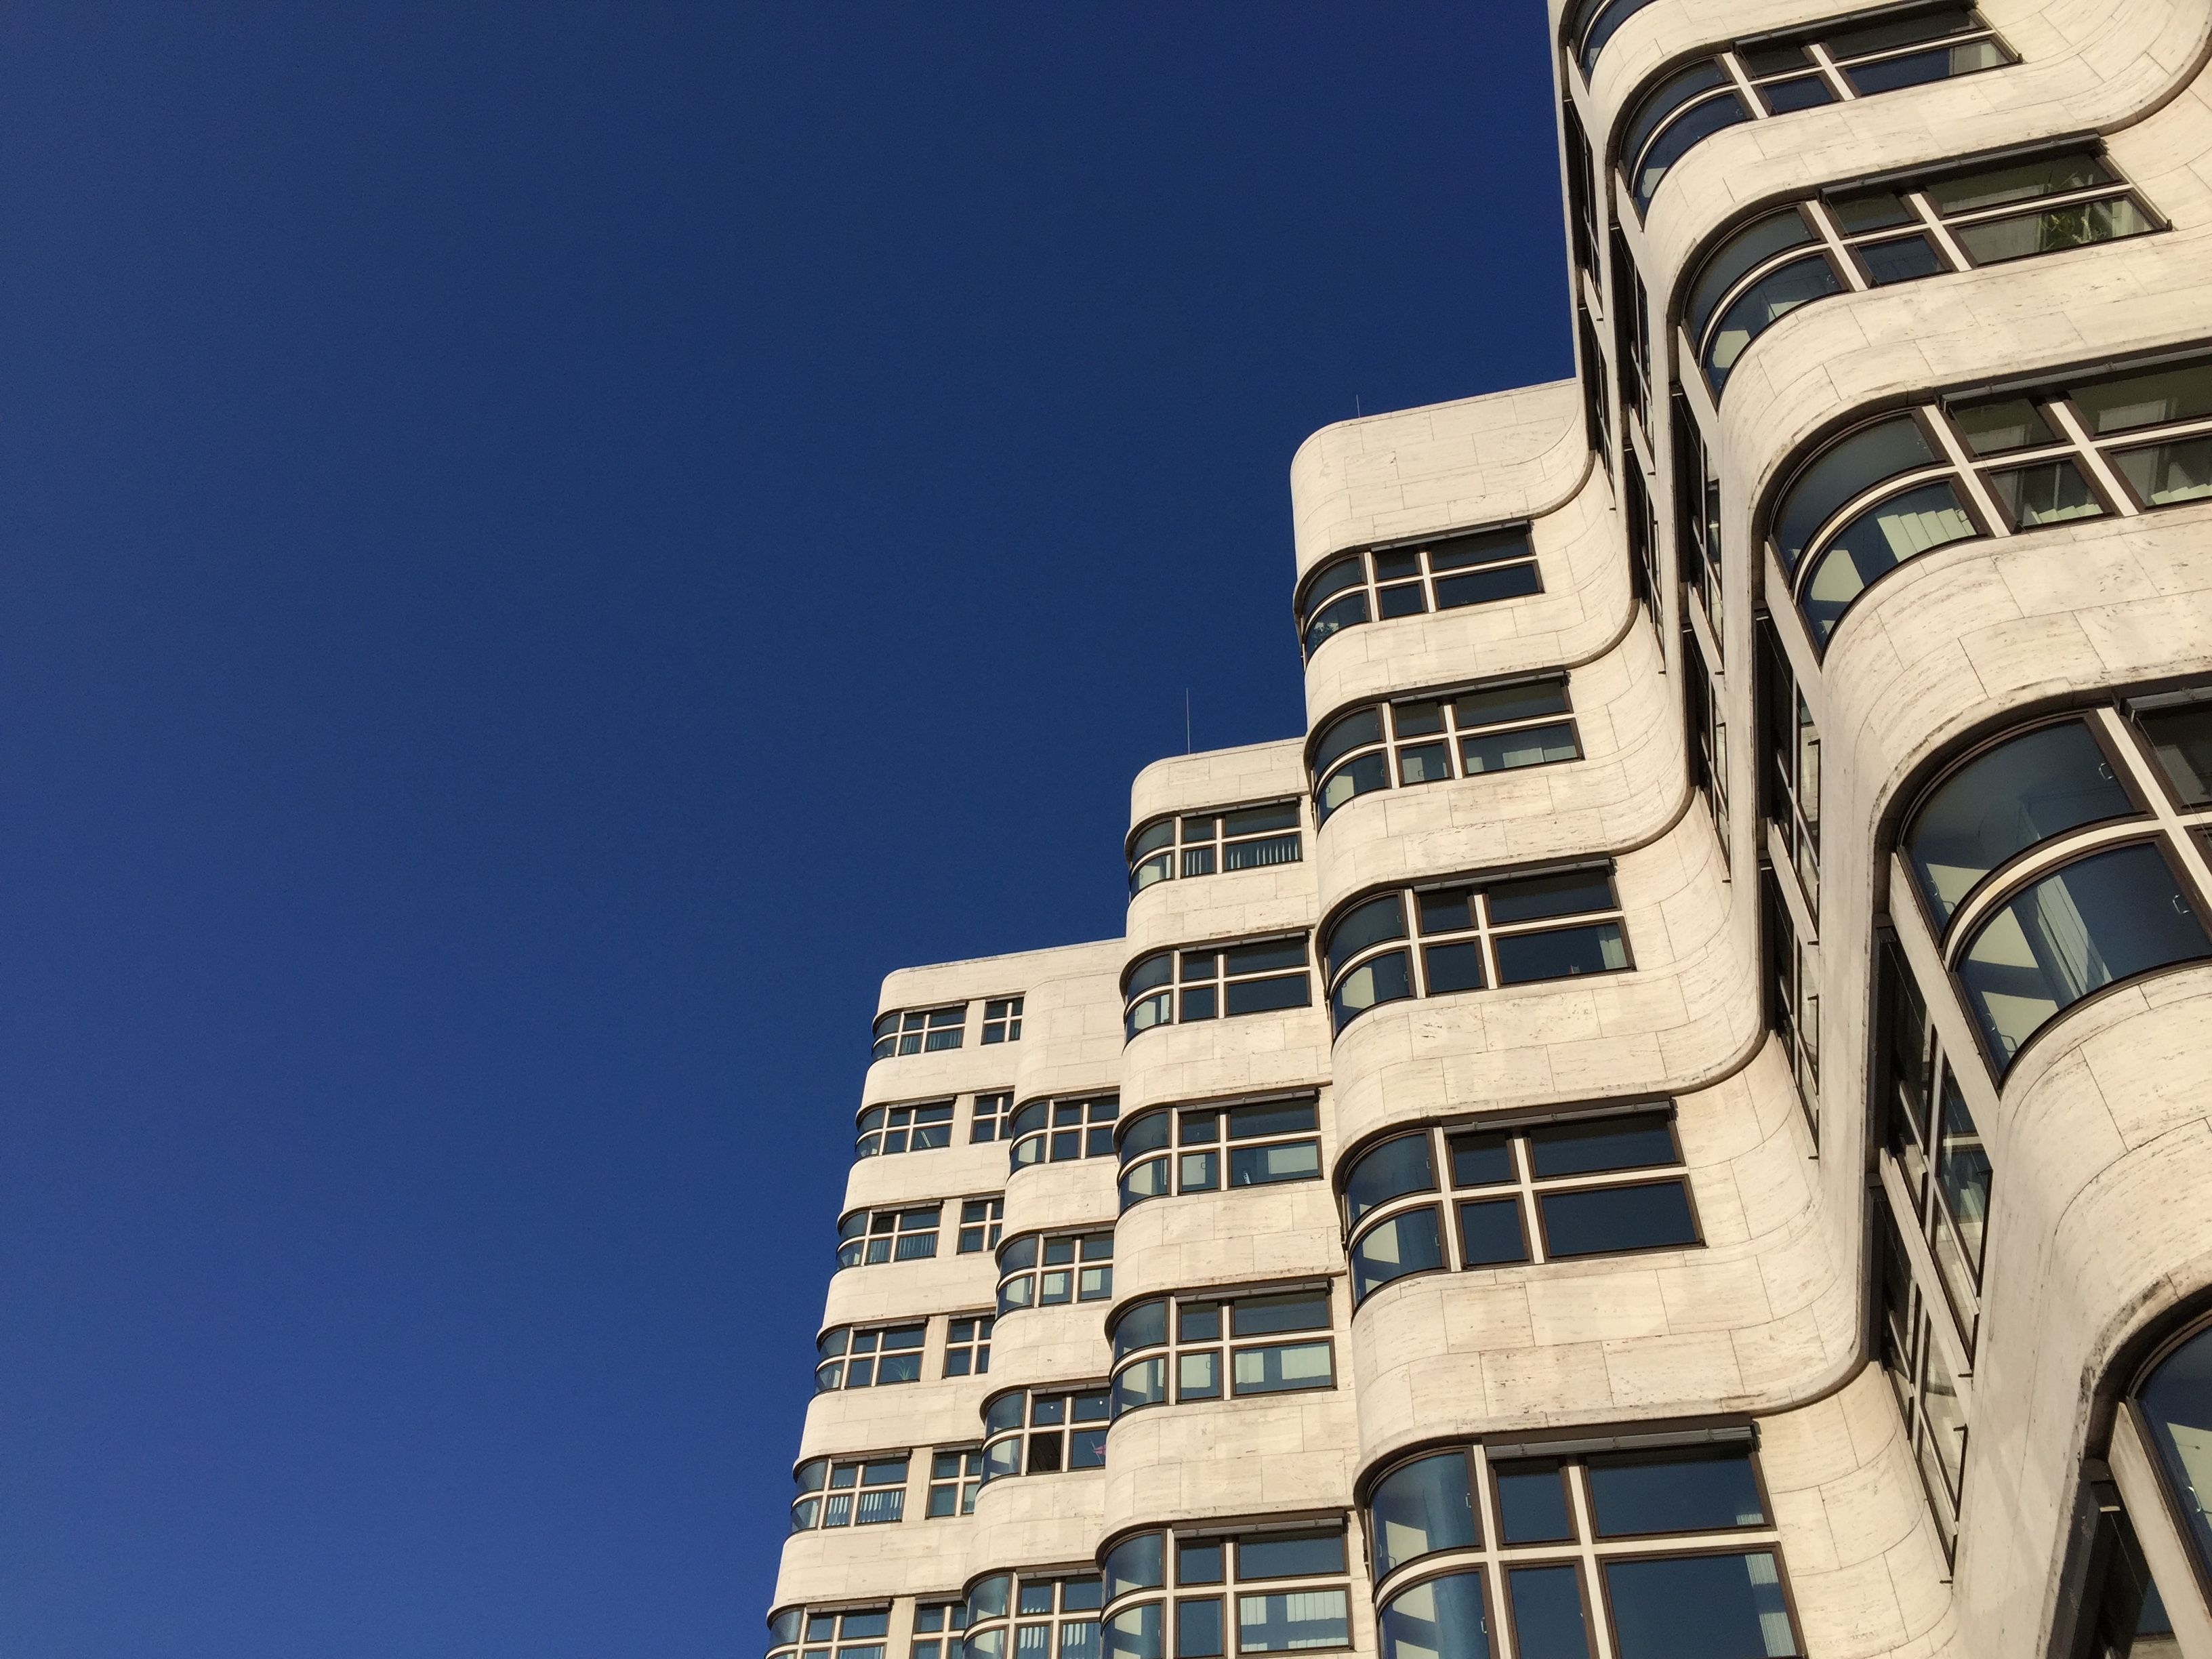 Blue sky over berlin shell house by emil fahrenkamp architecture waves